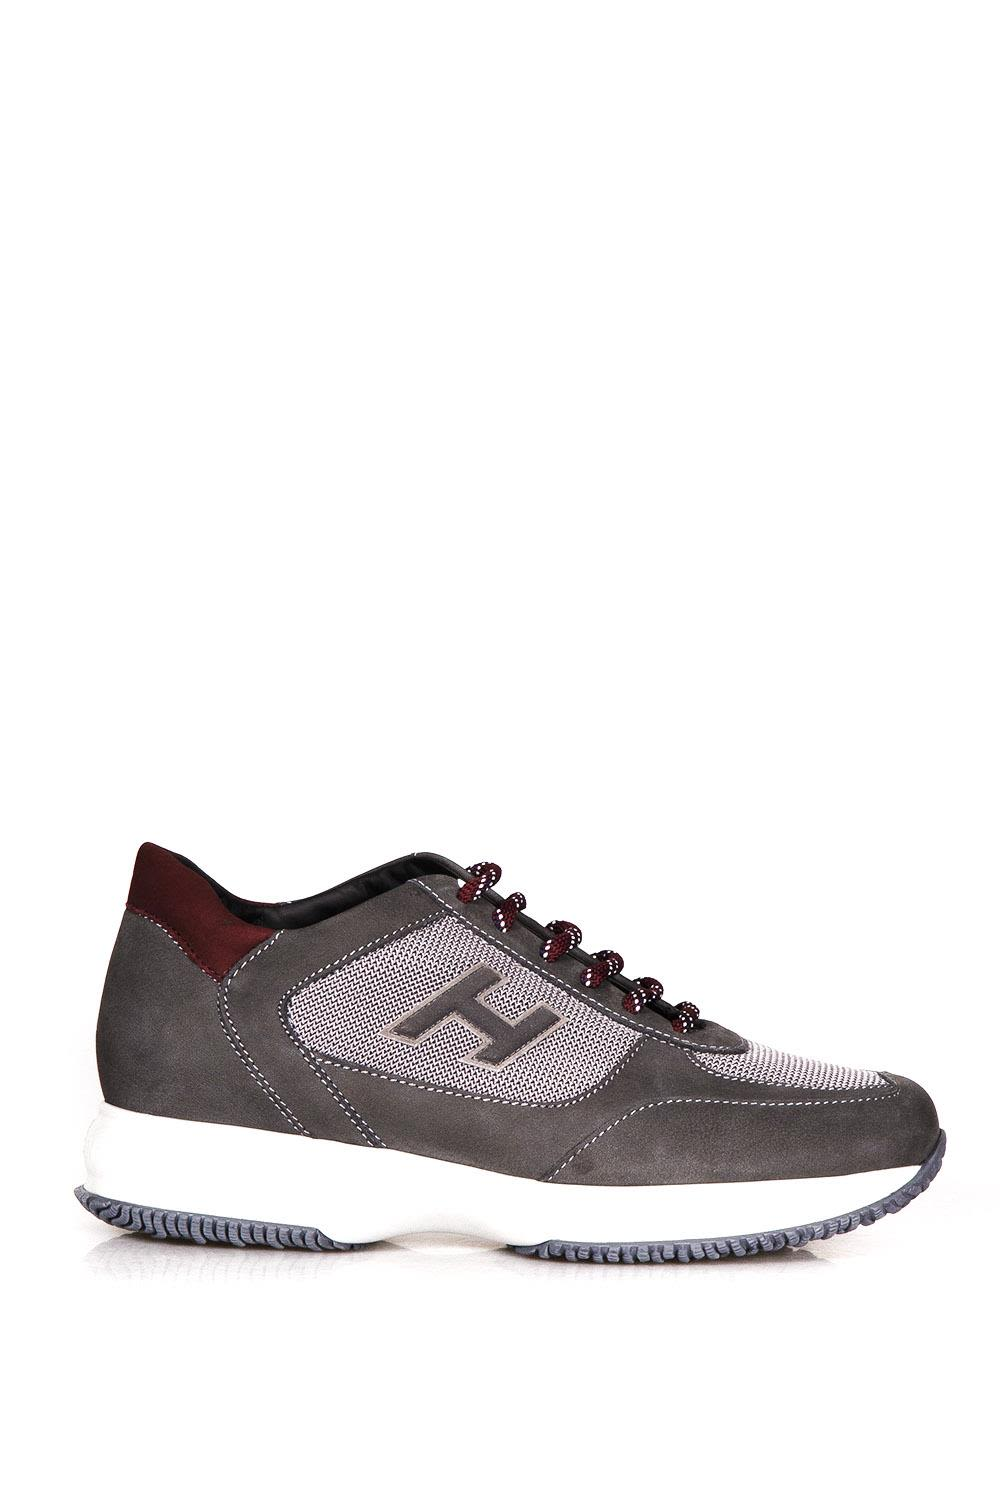 Hogan New Interactive Suede & Mesh Sneakers